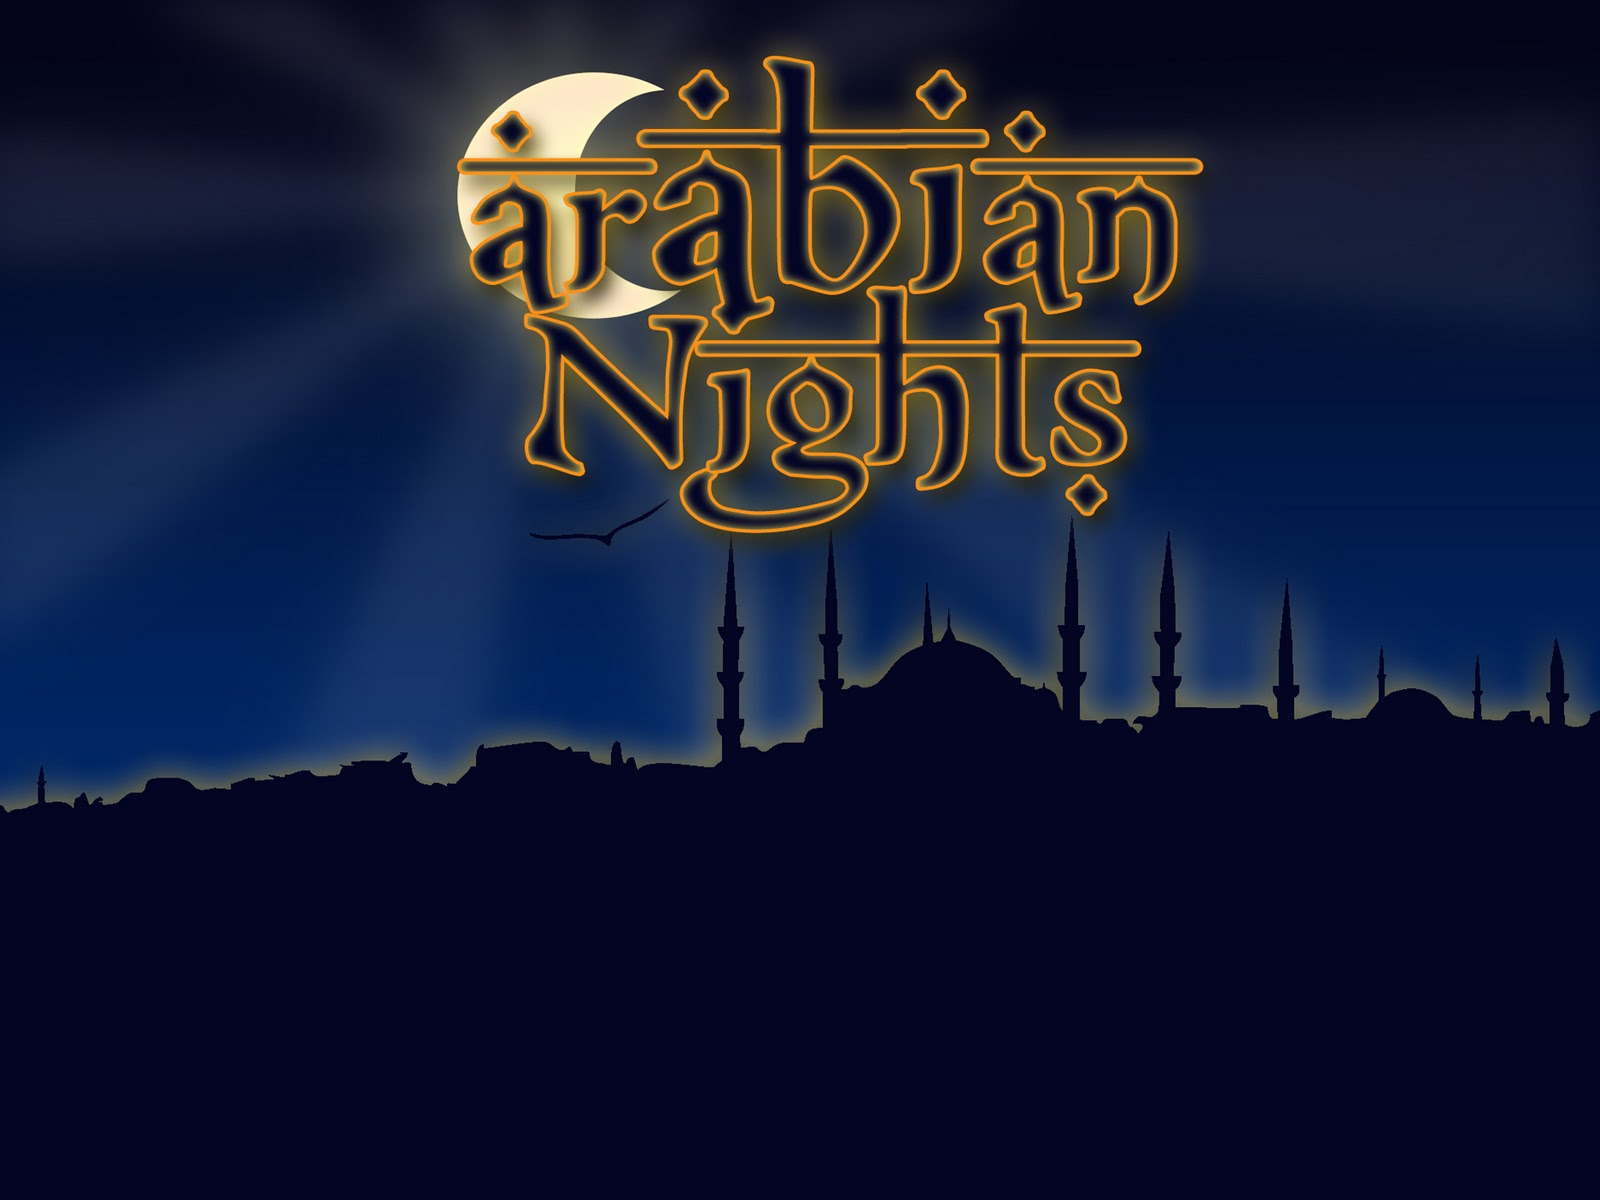 araibian nights